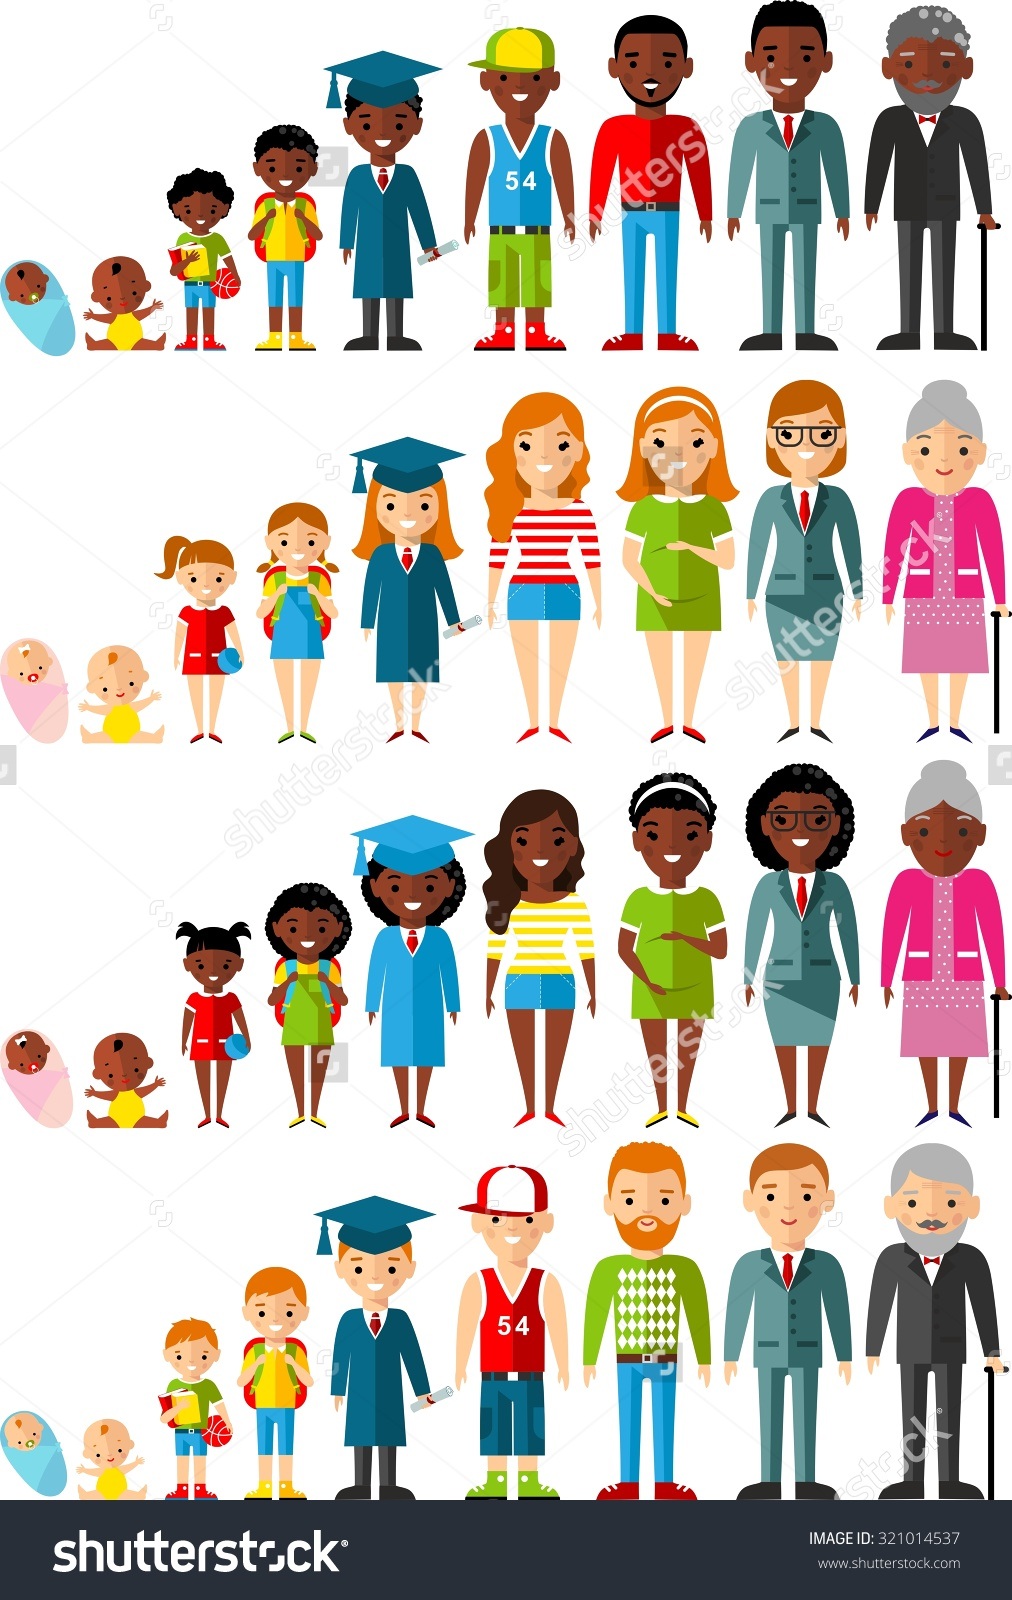 People Of All Ages Clipart.